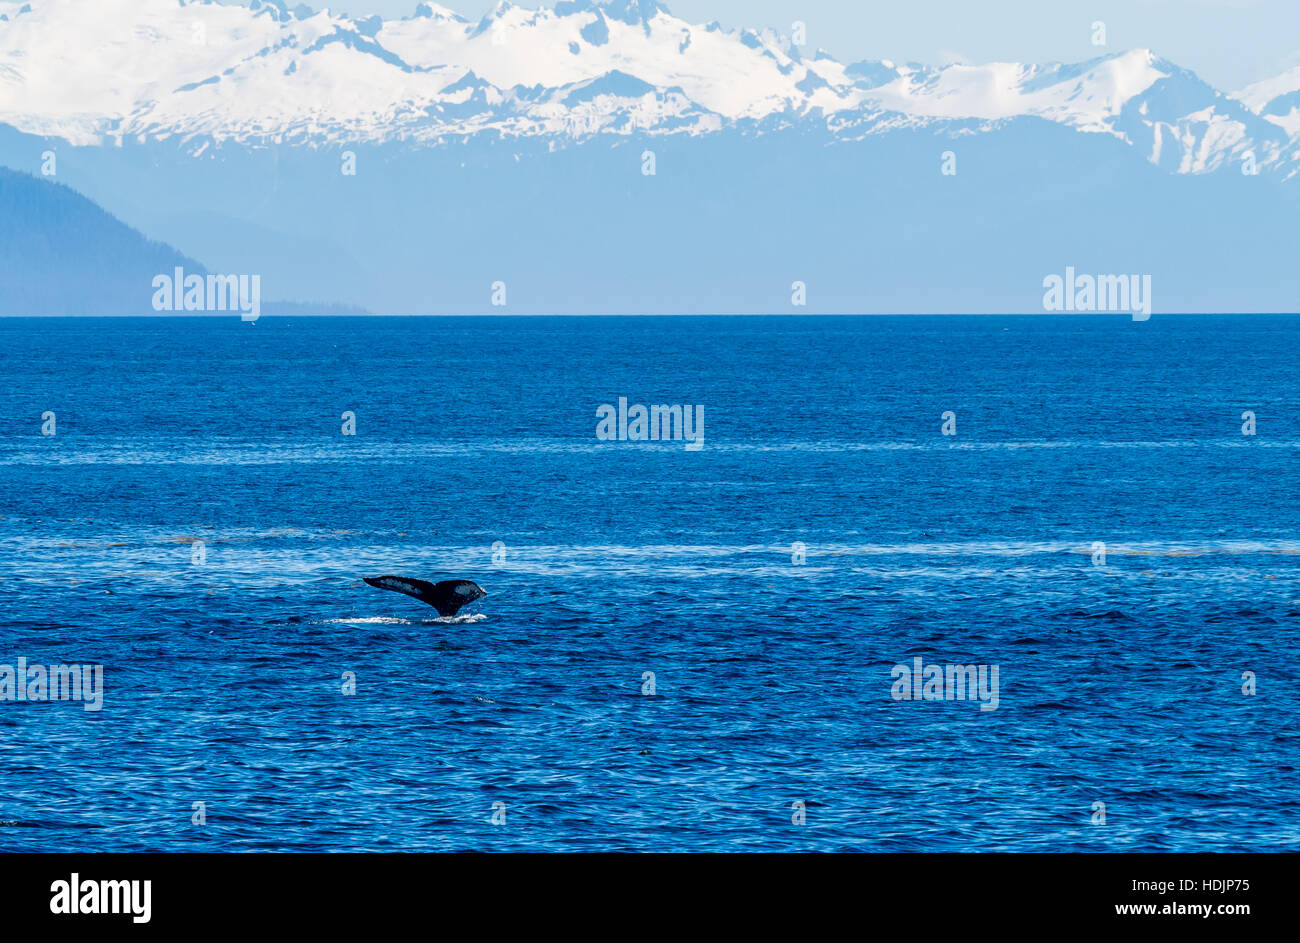 View of snow capped mountains of the Tongass Rainforest in southeastern Alaska with a whale sounding in the foreground - Stock Image